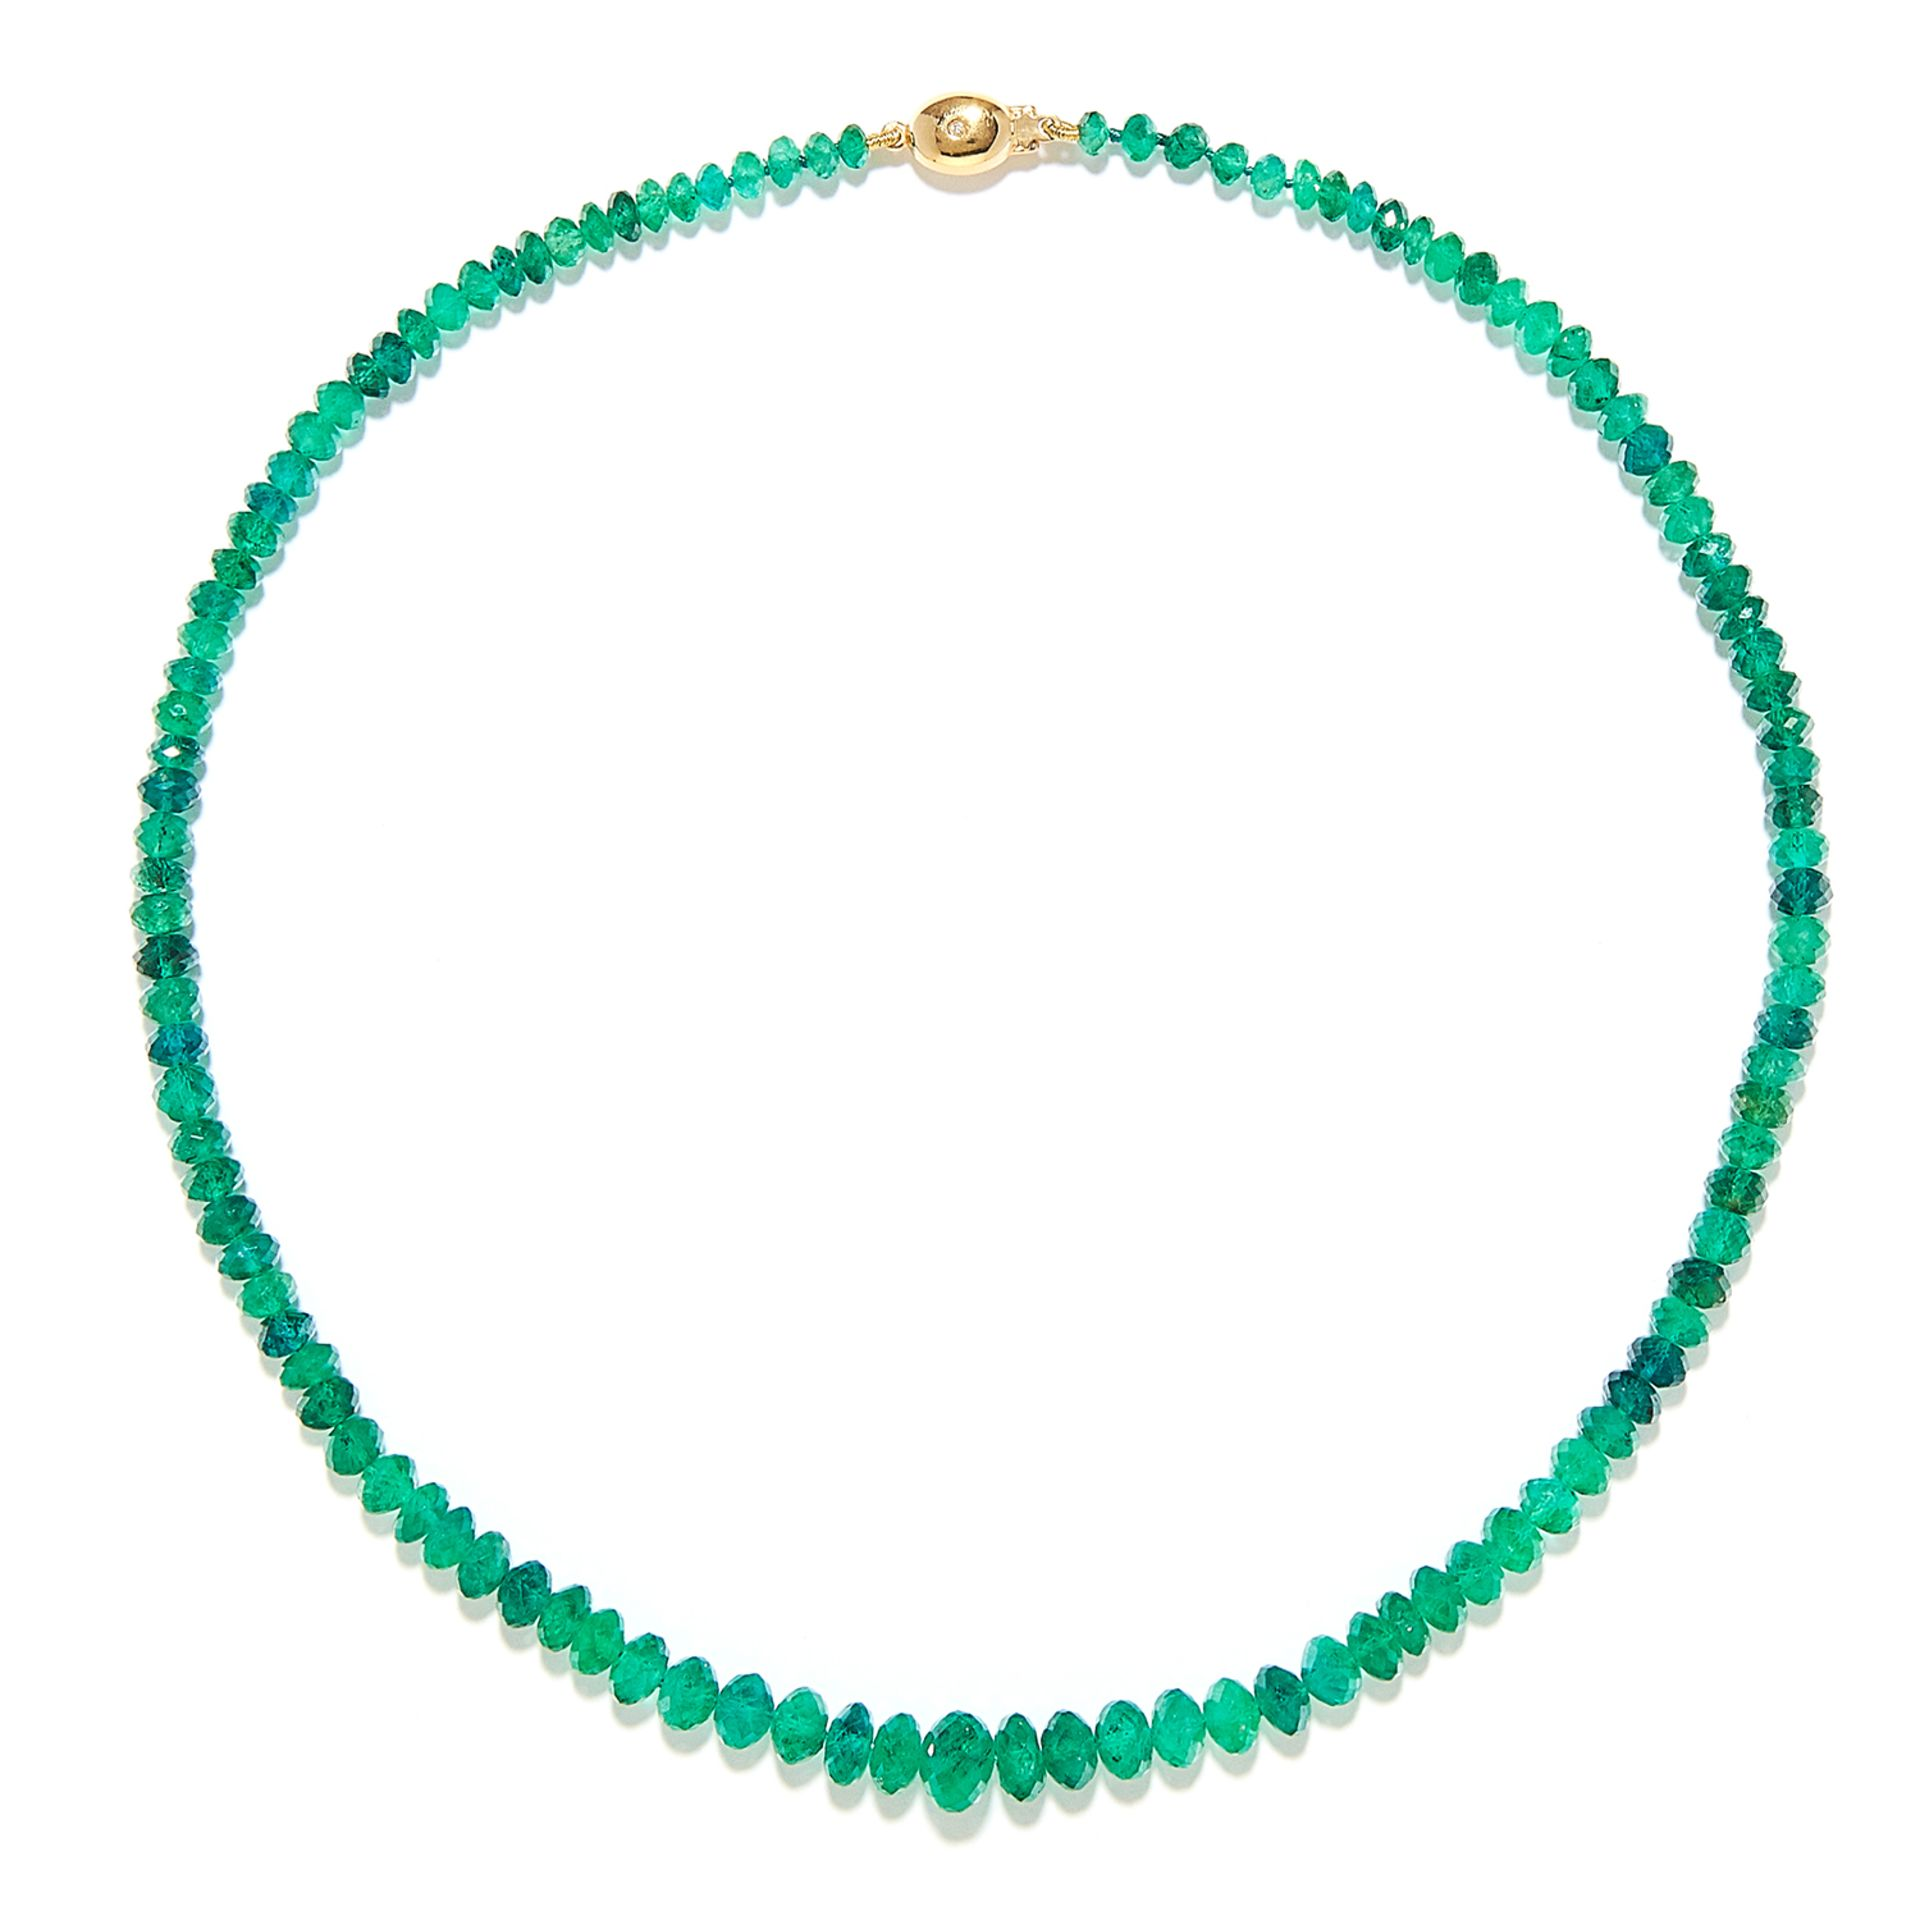 EMERALD BEAD AND DIAMOND NECKLACE in 18ct yellow gold, comprising a row of one hundred and sixteen